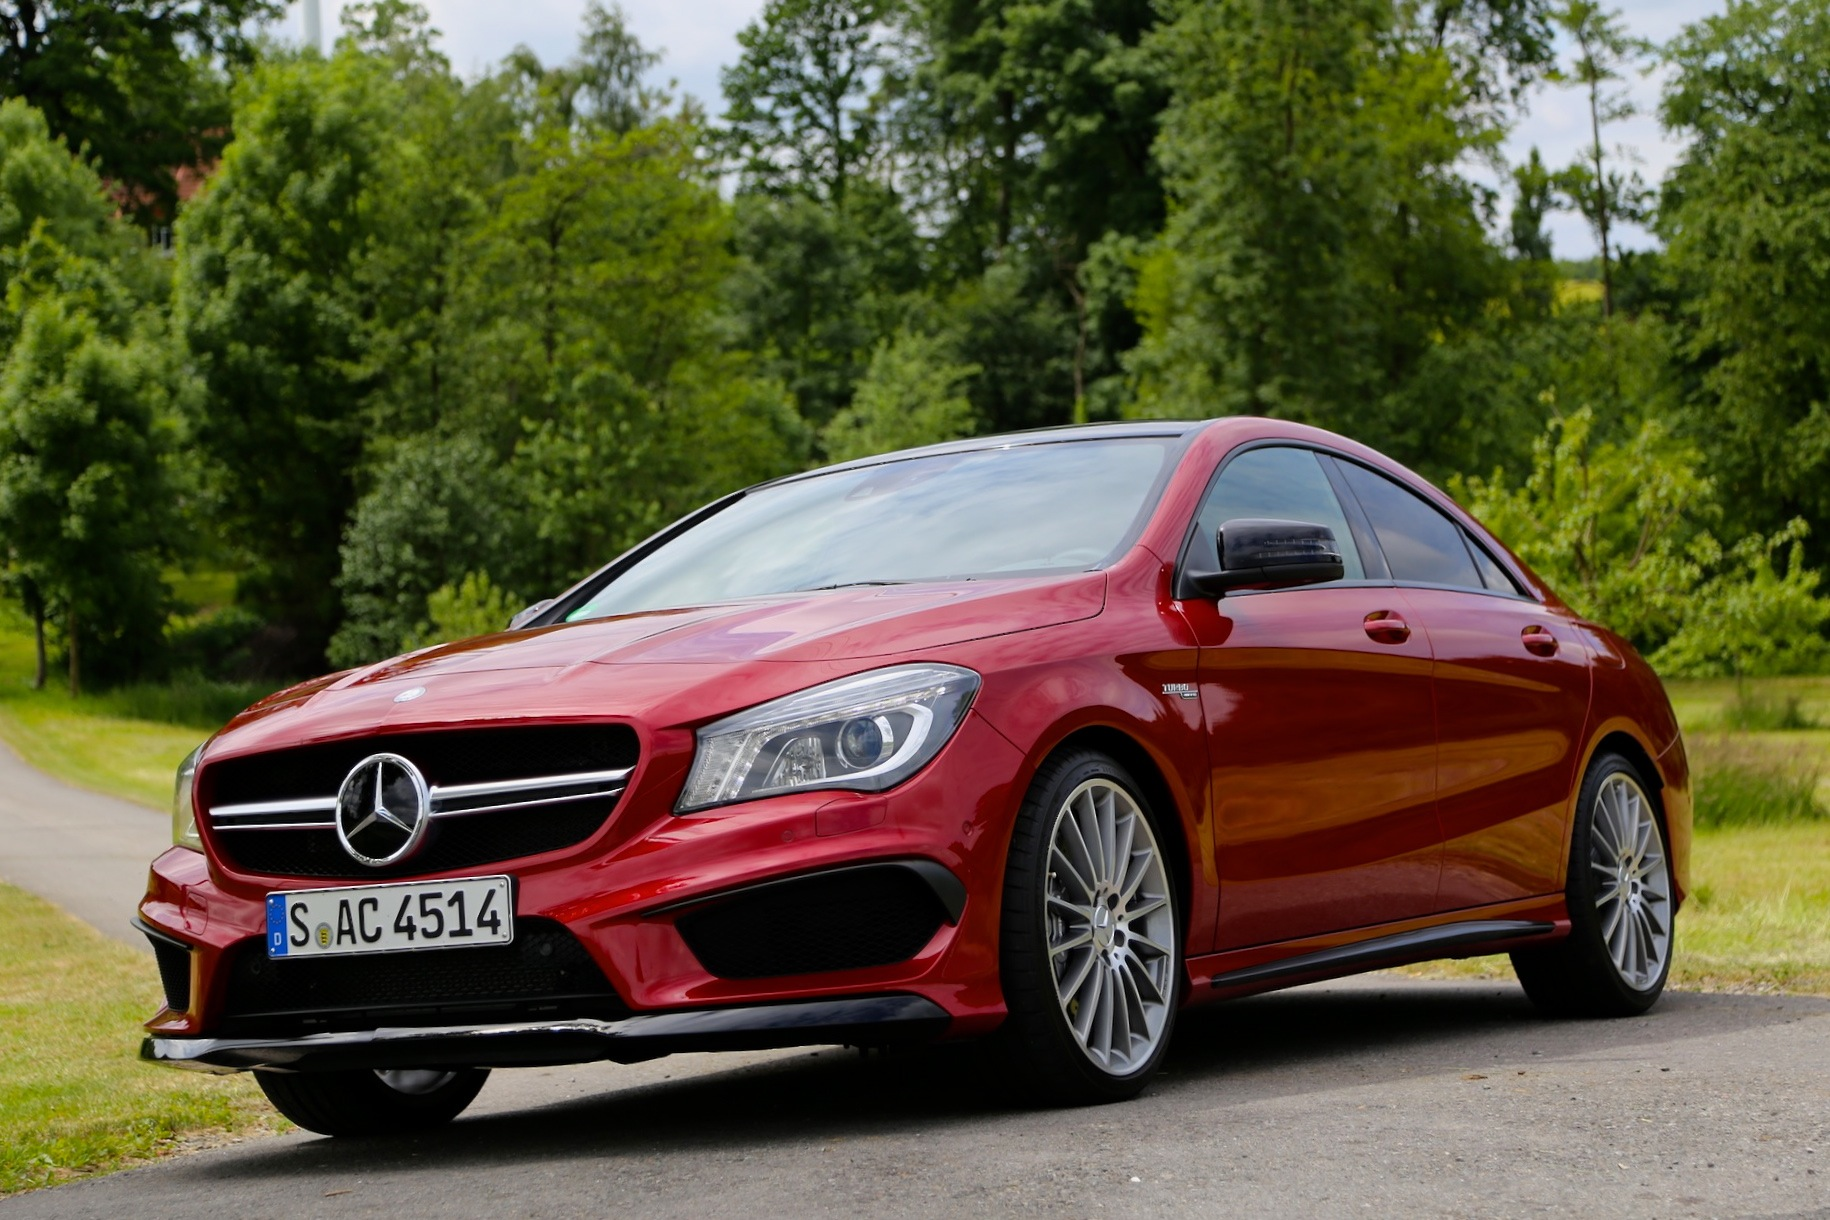 2014 Mercedes-Benz CLA 45 AMG first drive review (Page 2)